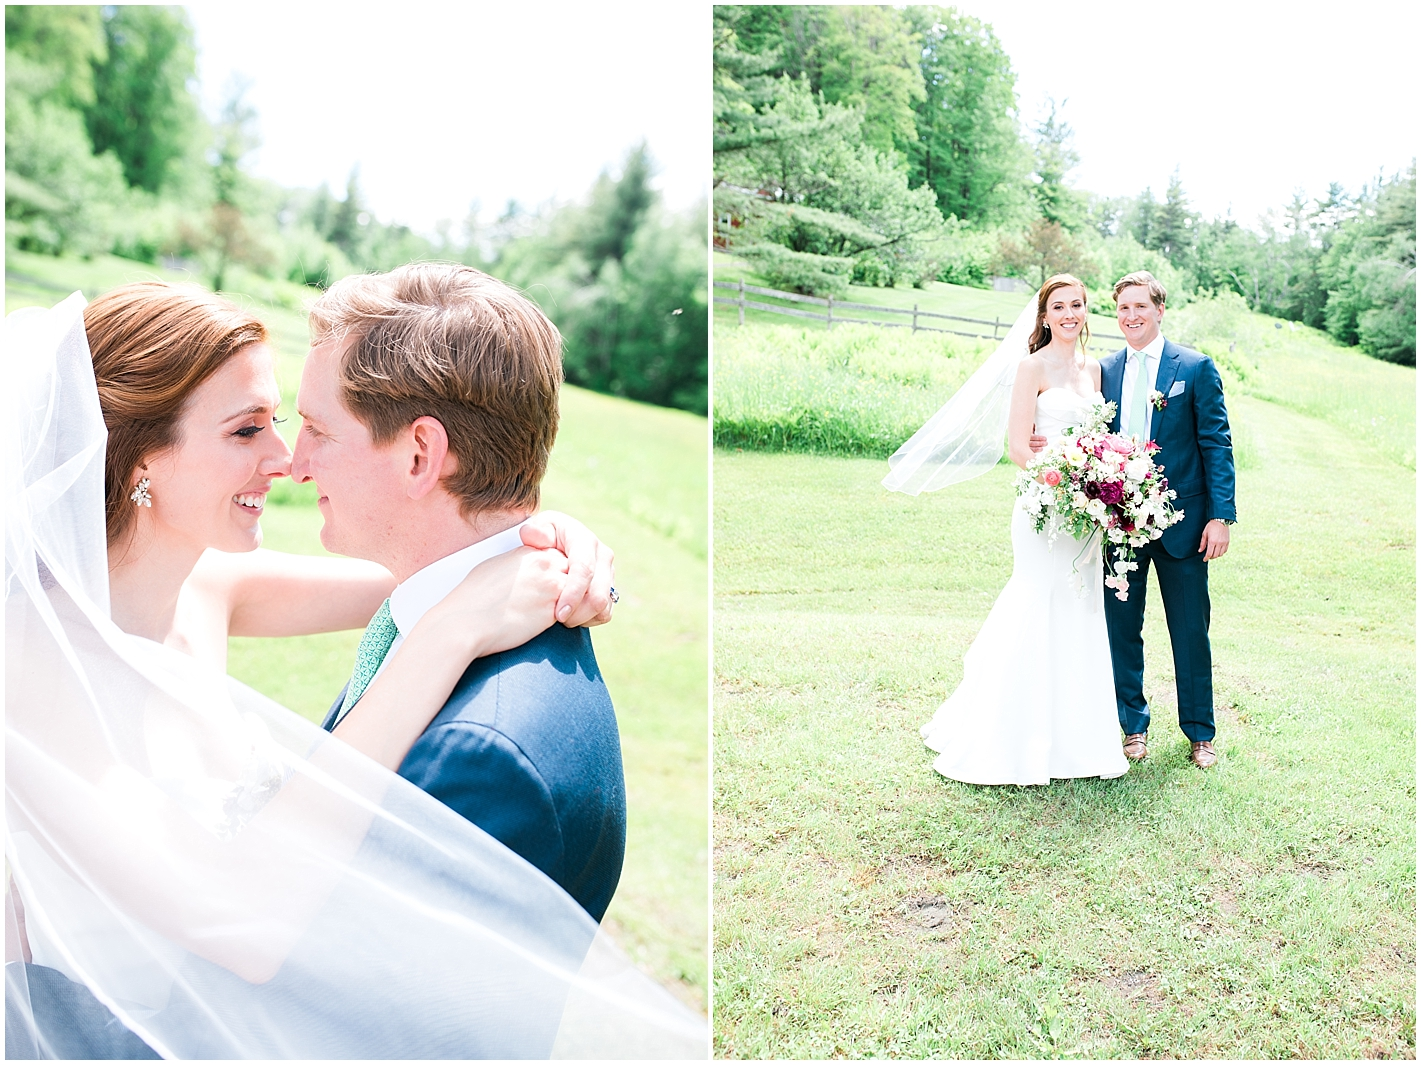 Woodstock Vermont Wedding Portrait Photographer Alyssa Parker Photography